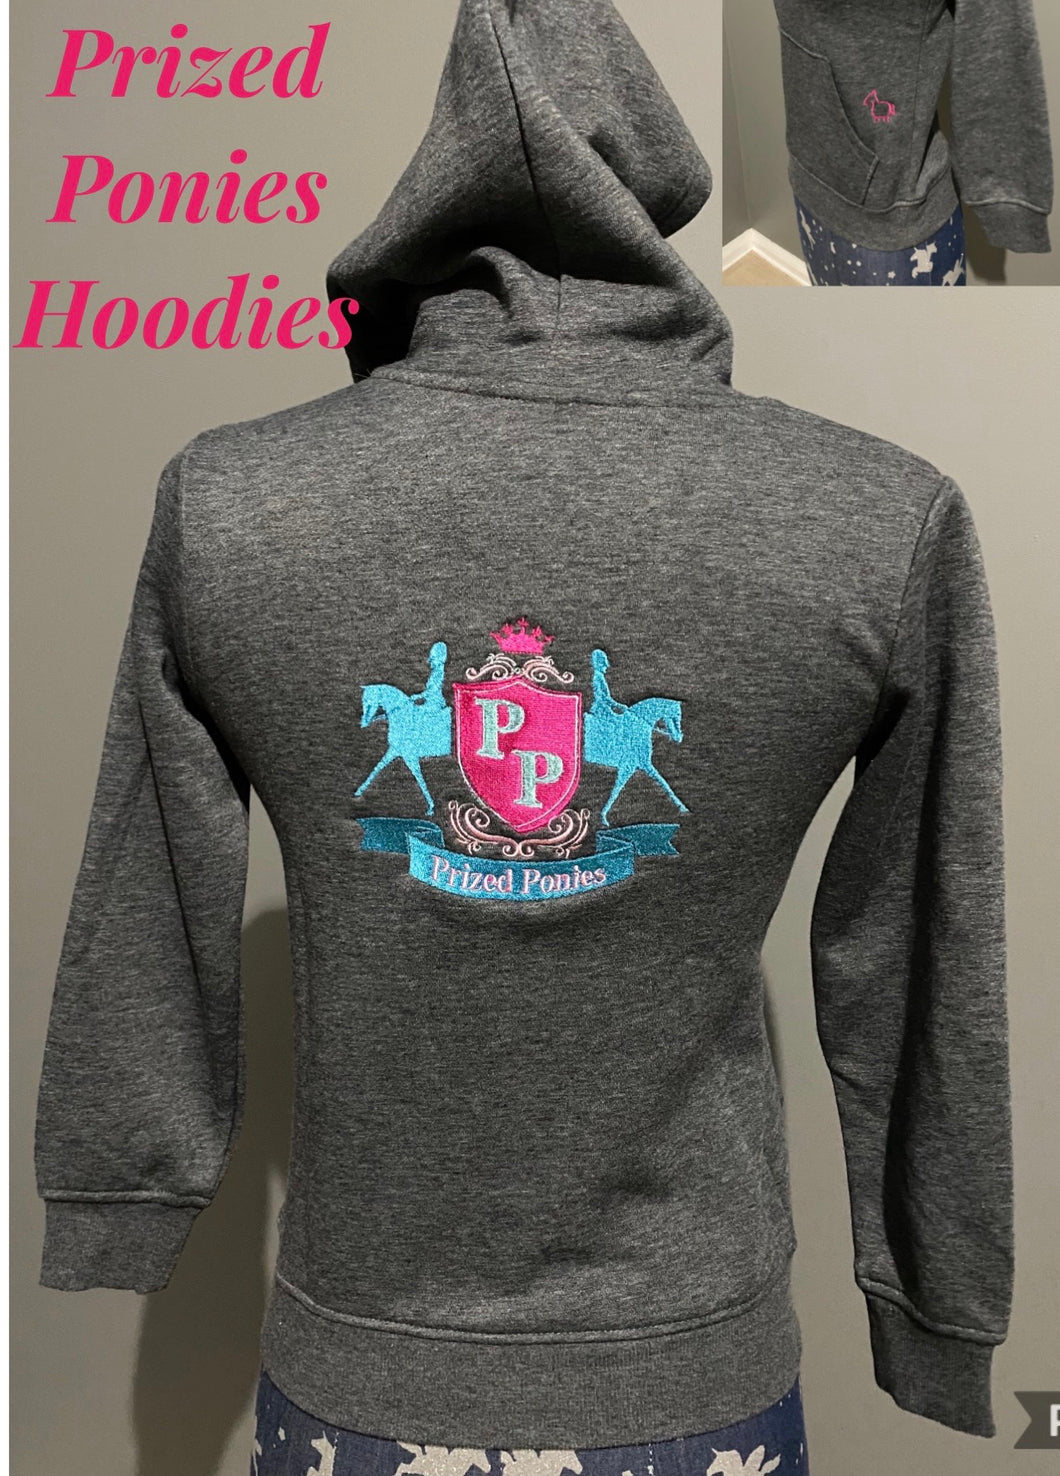 Prized ponies embroidered hoodies